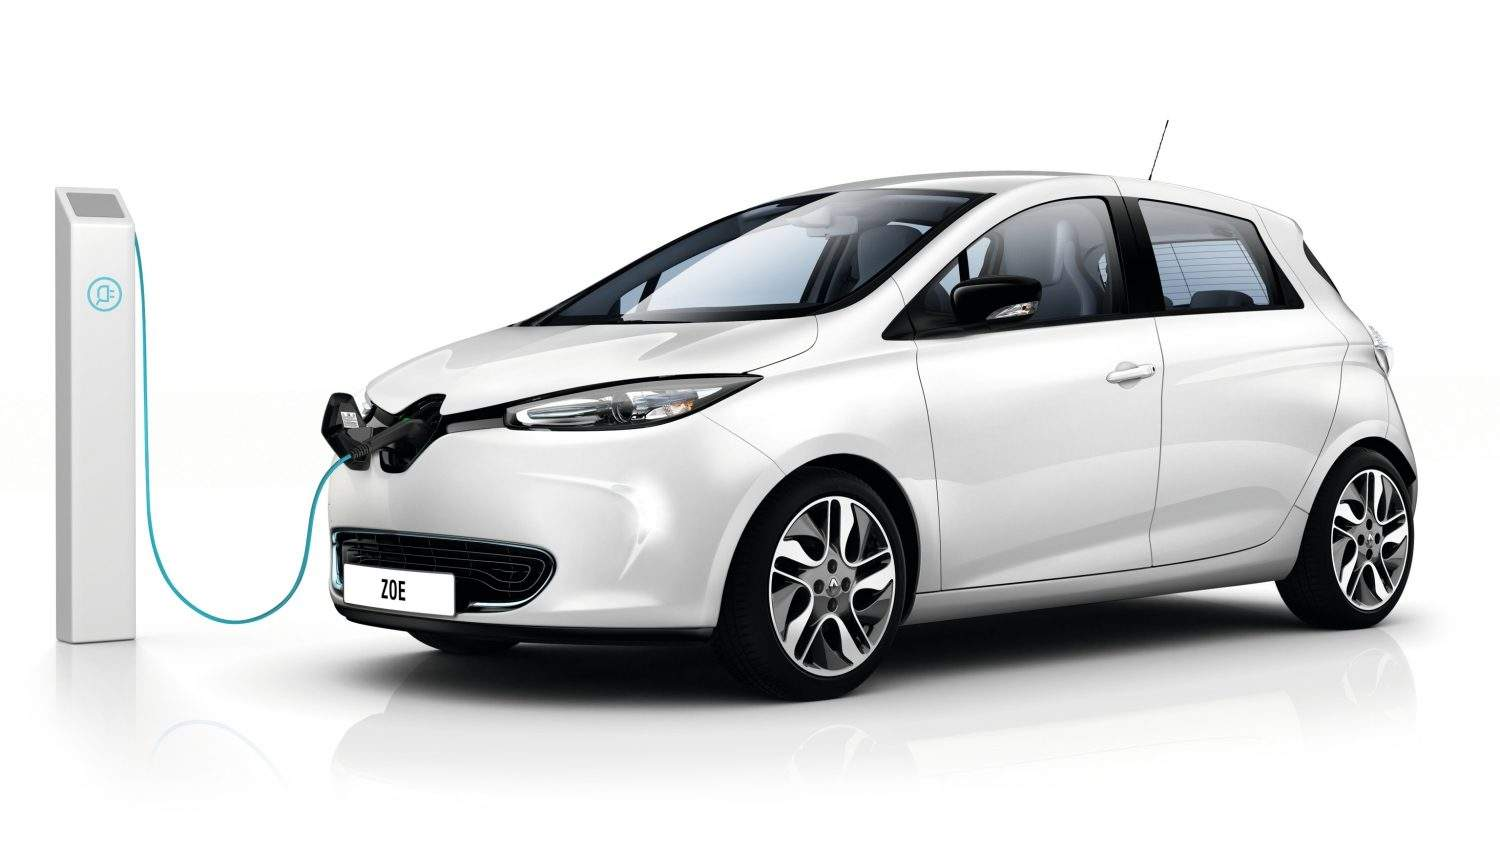 Renault Zoe, electric car, electric cars, electric vehicle, electric vehicles, best electric car